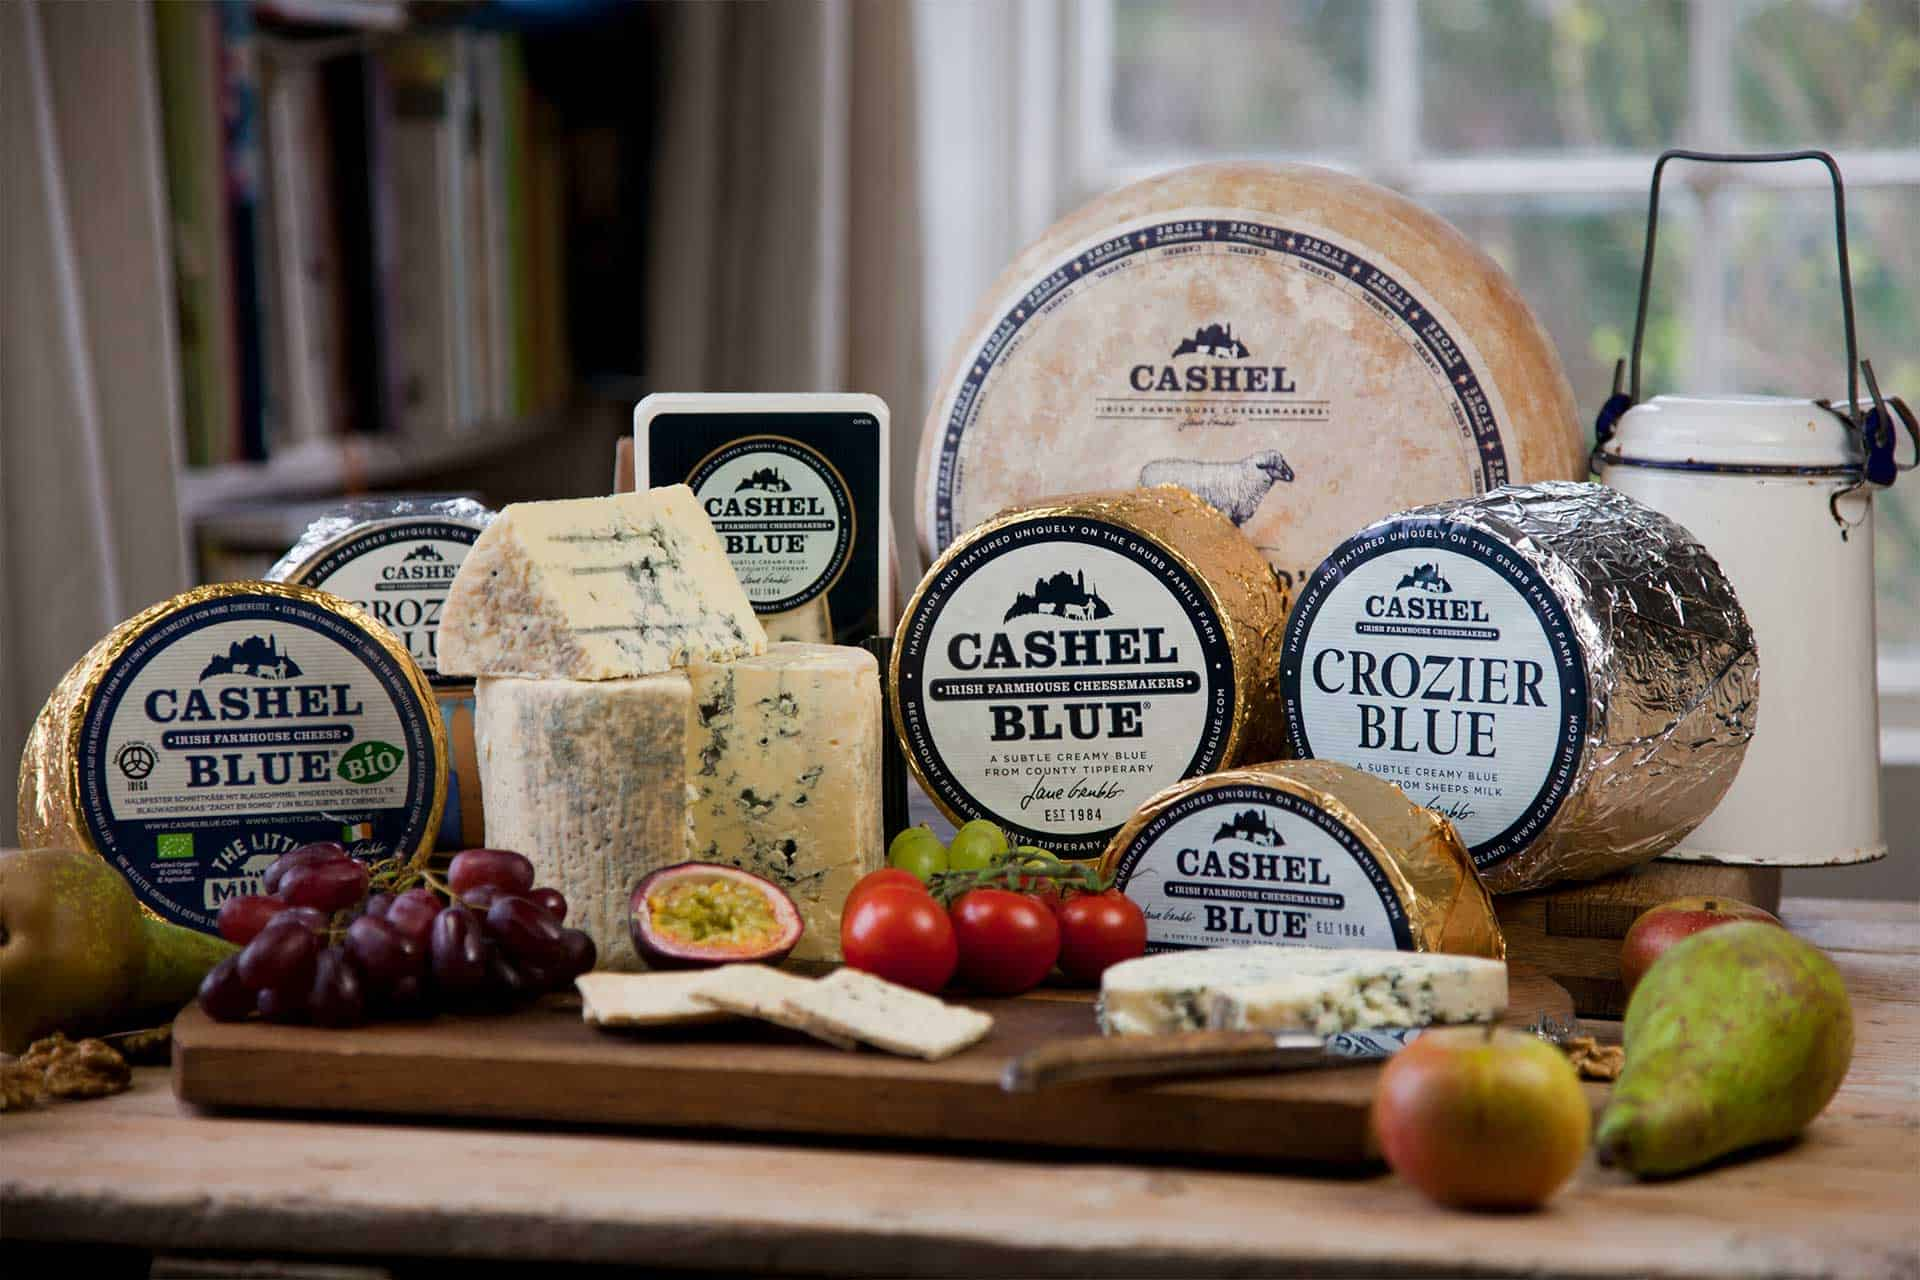 Cashel Farmhouse Cheesemakers